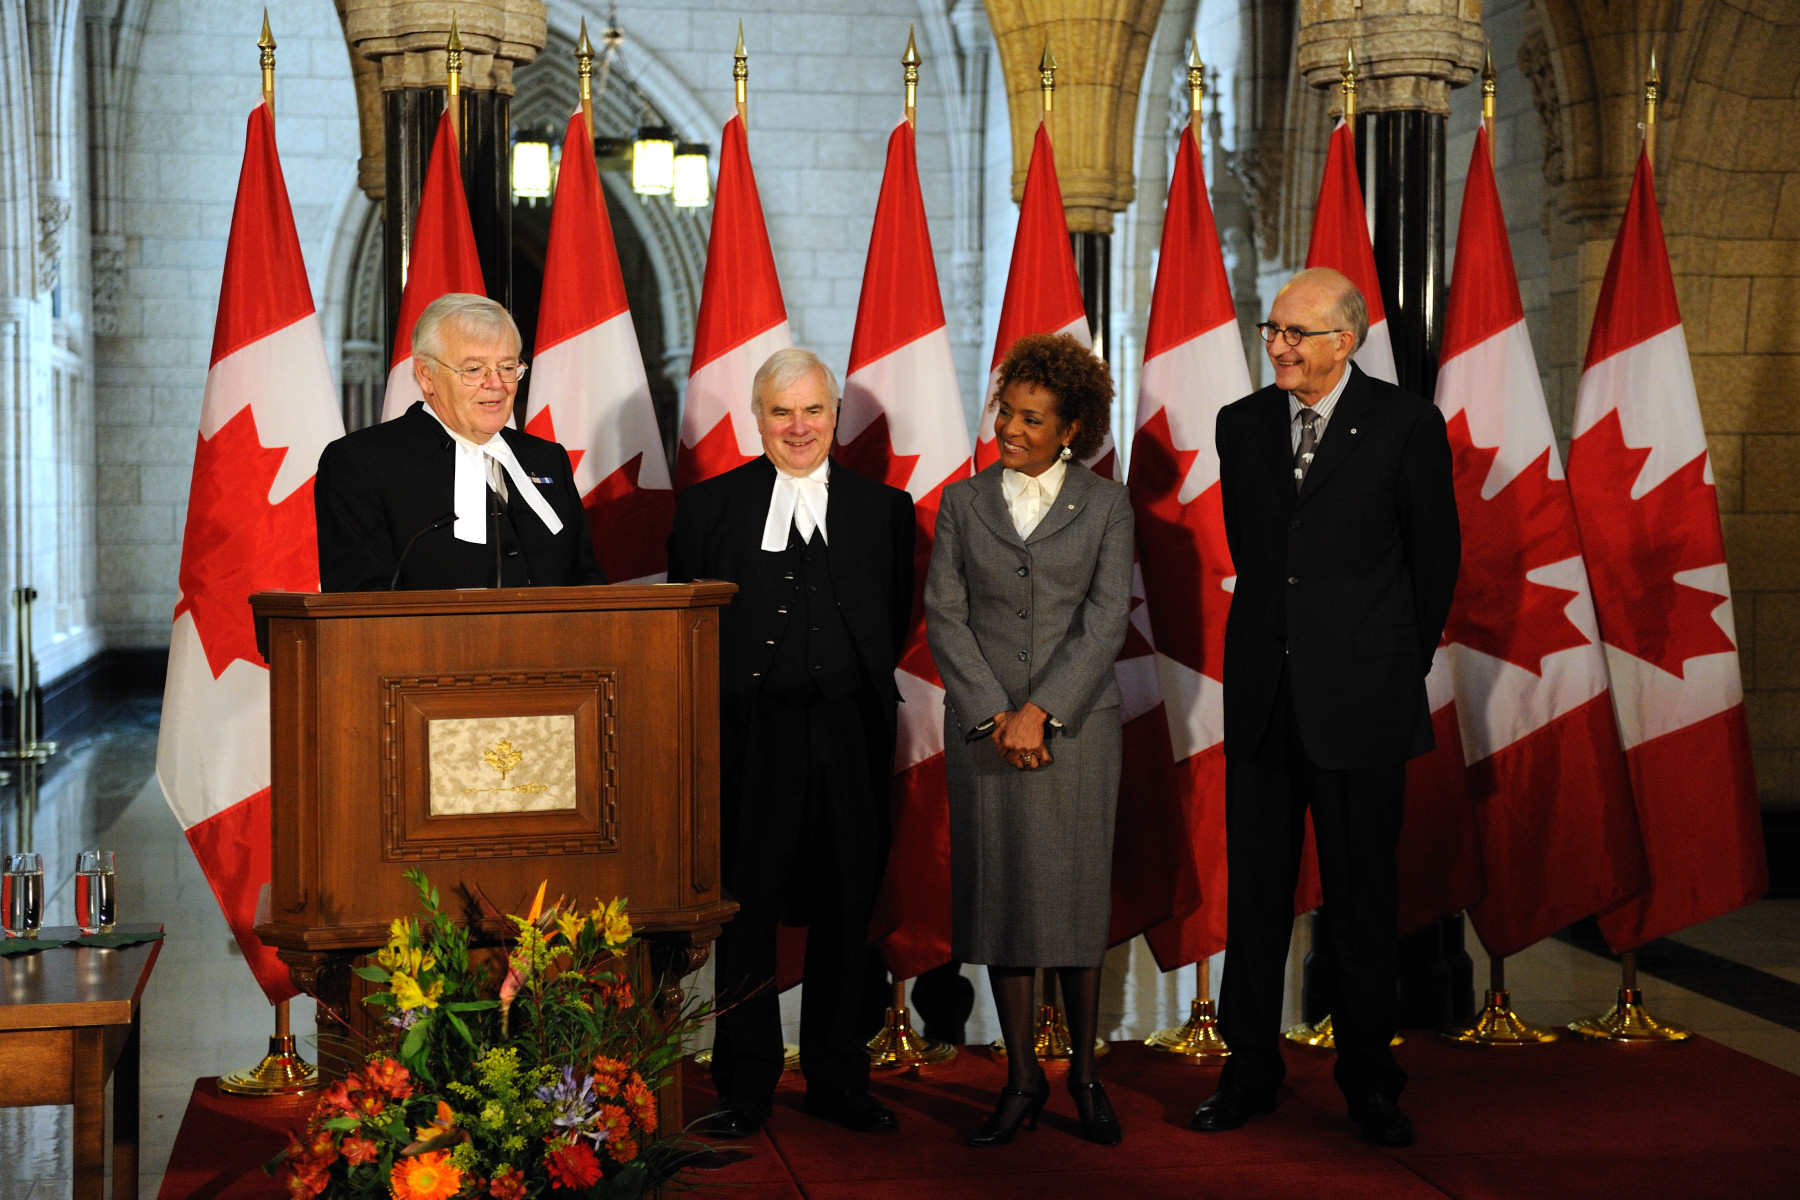 The Honourable Noël A. Kinsella offered welcoming remarks to Their Excellencies.